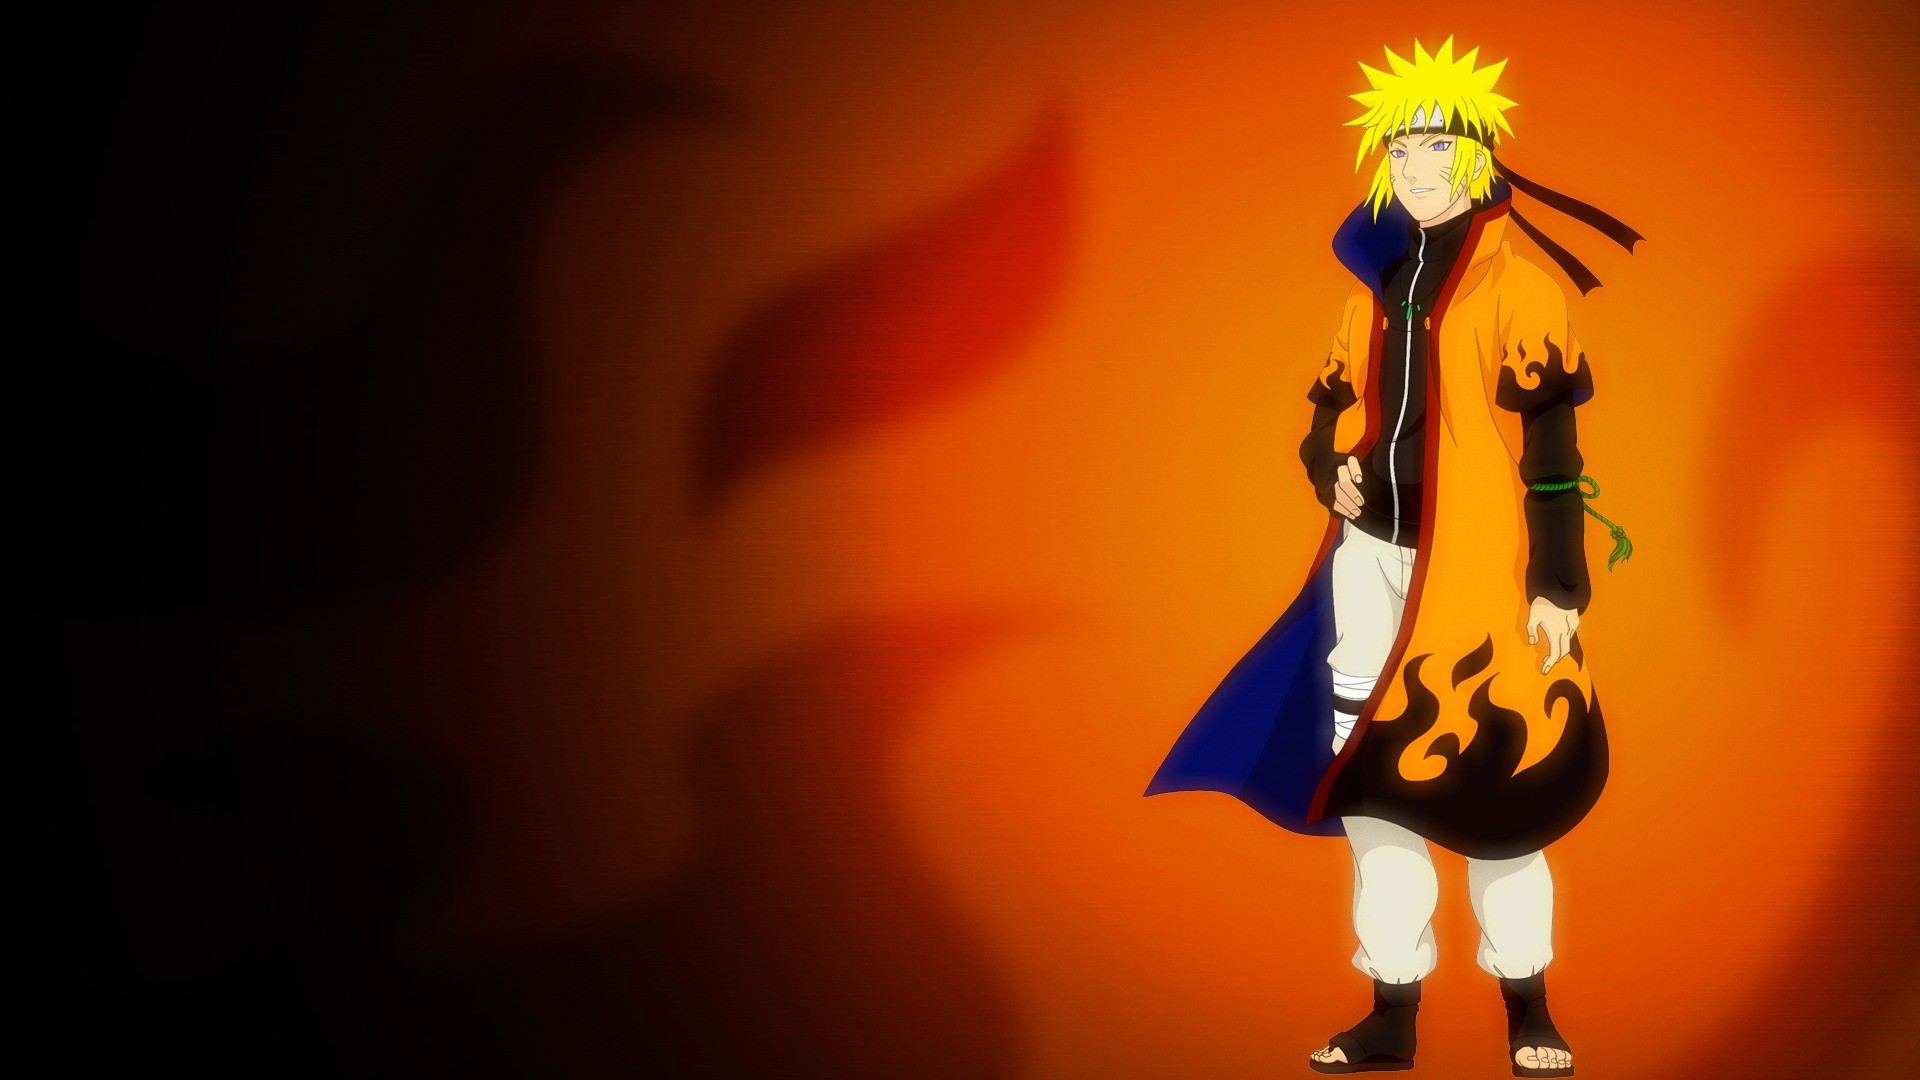 Anime Naruto Cool Hd Pictures.